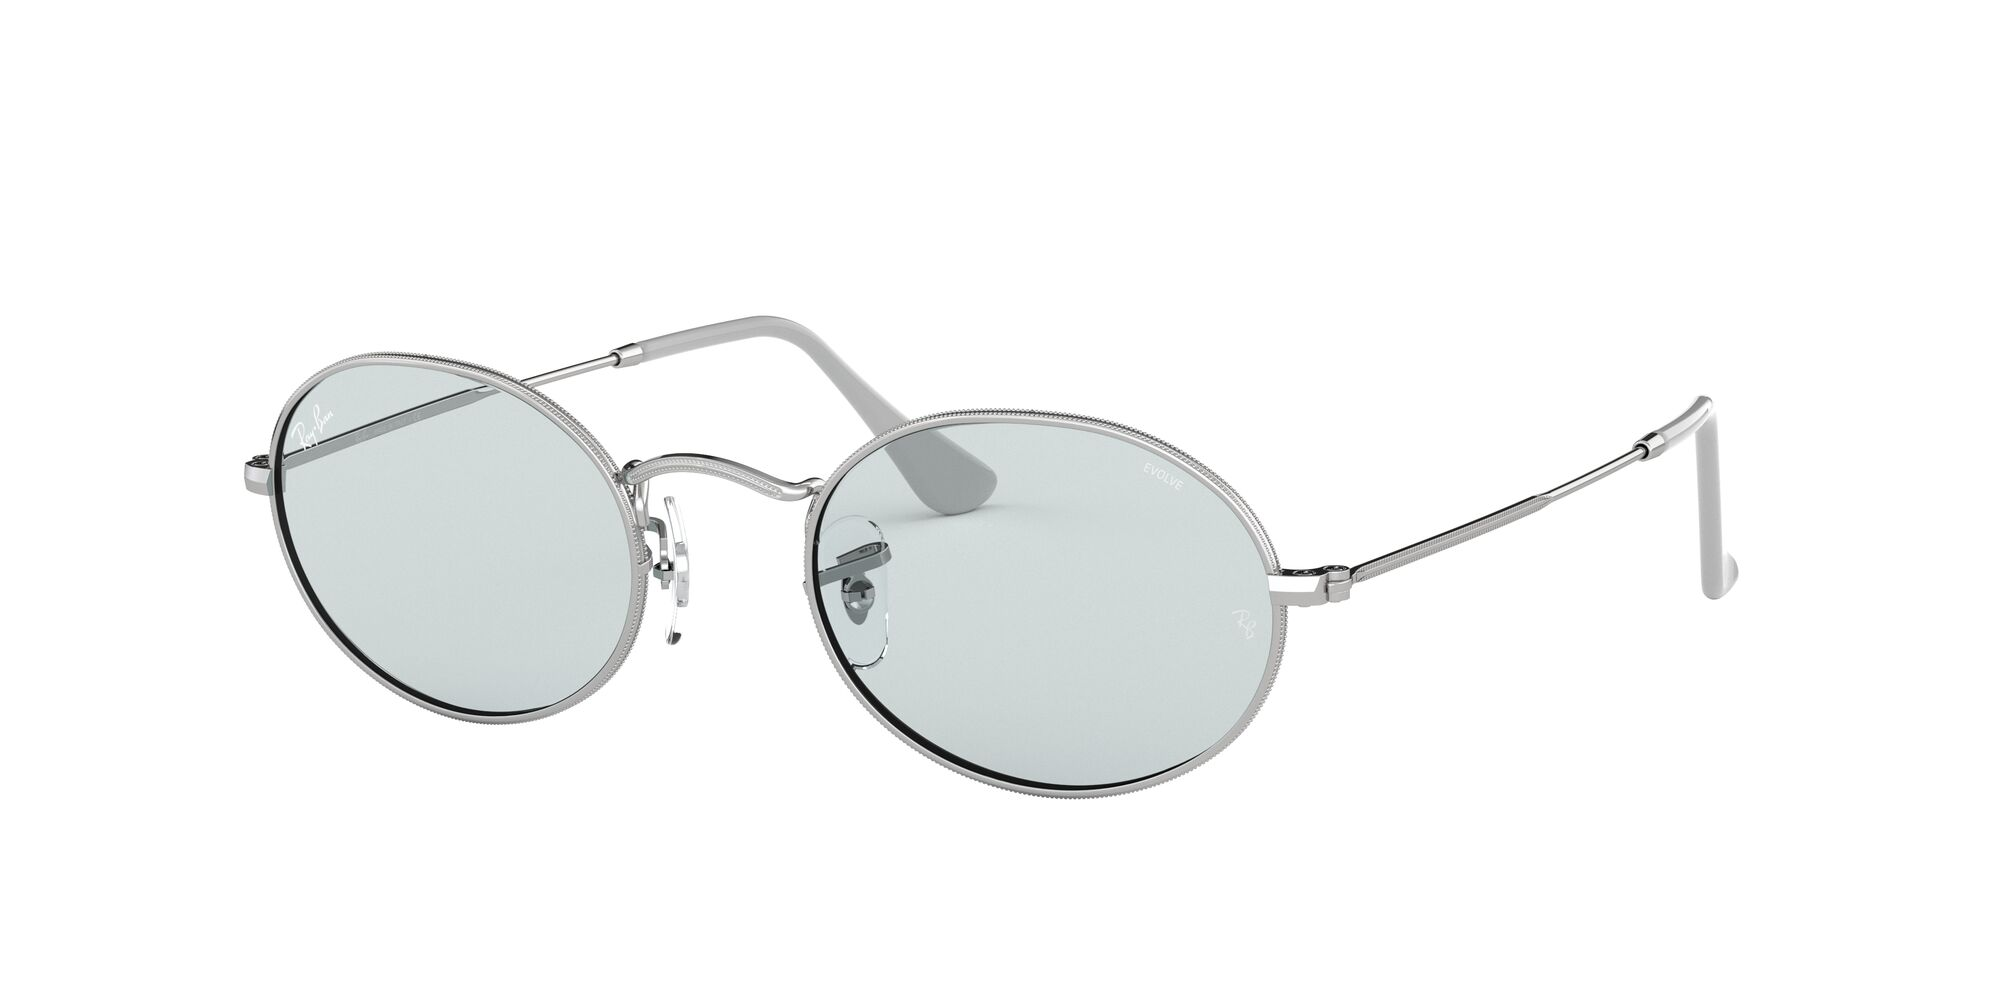 Angle_Left01 Ray-Ban Ray-Ban 0RB3547 003/T3 53/21 Zilver/Grijs